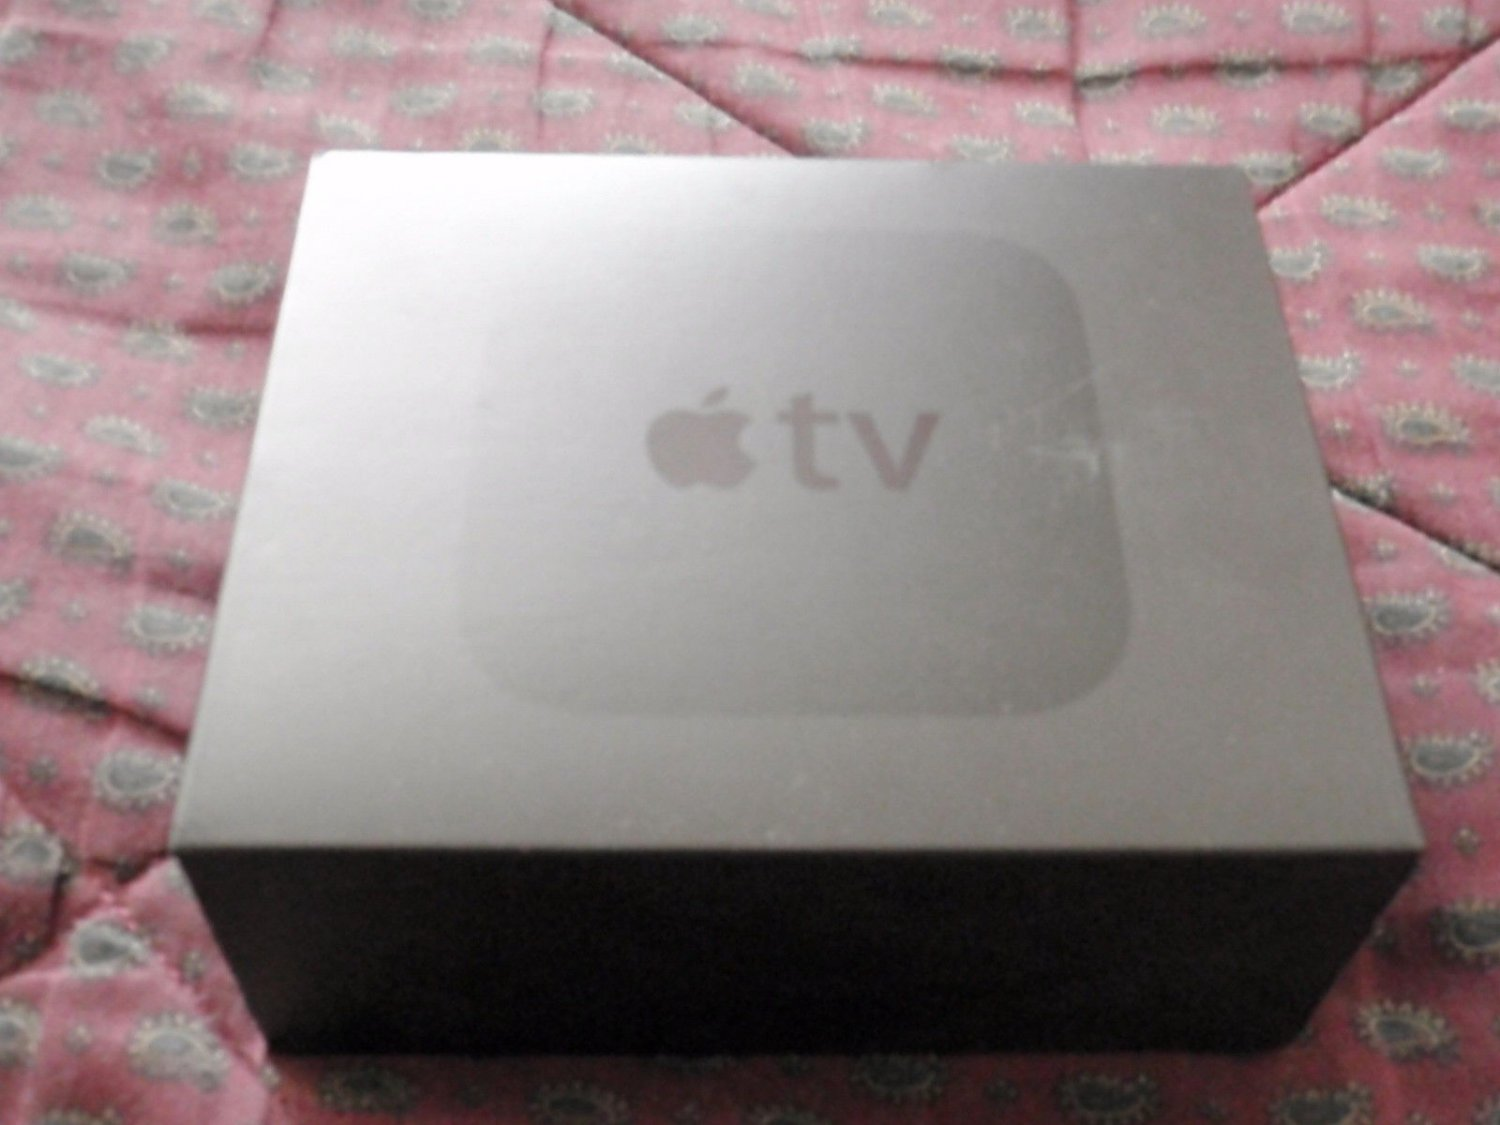 EMPTY BOX for Apple TV (4th Generation) 64GB HD  - BOX ONLY